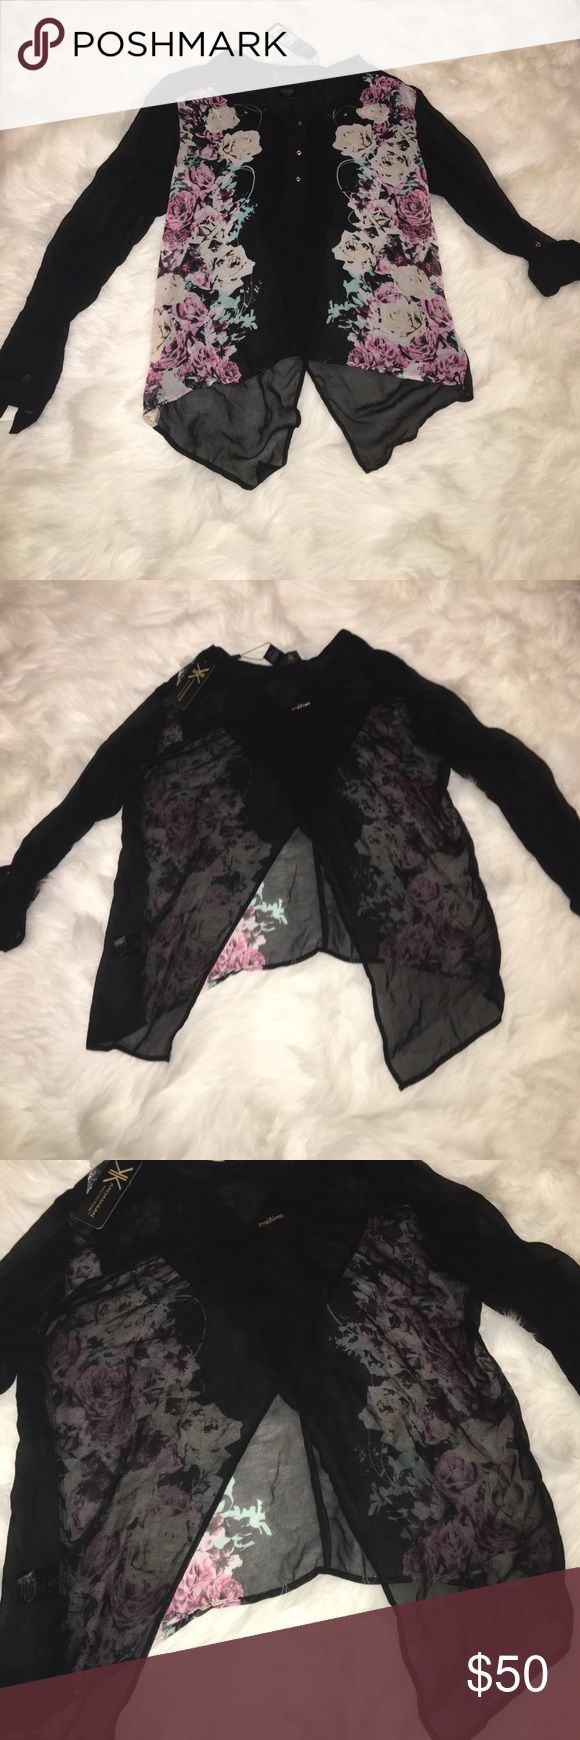 Printen Enveloe Blouse Kardashian kollection Kardashian kollection Kardashian Kollection Tops Blouses